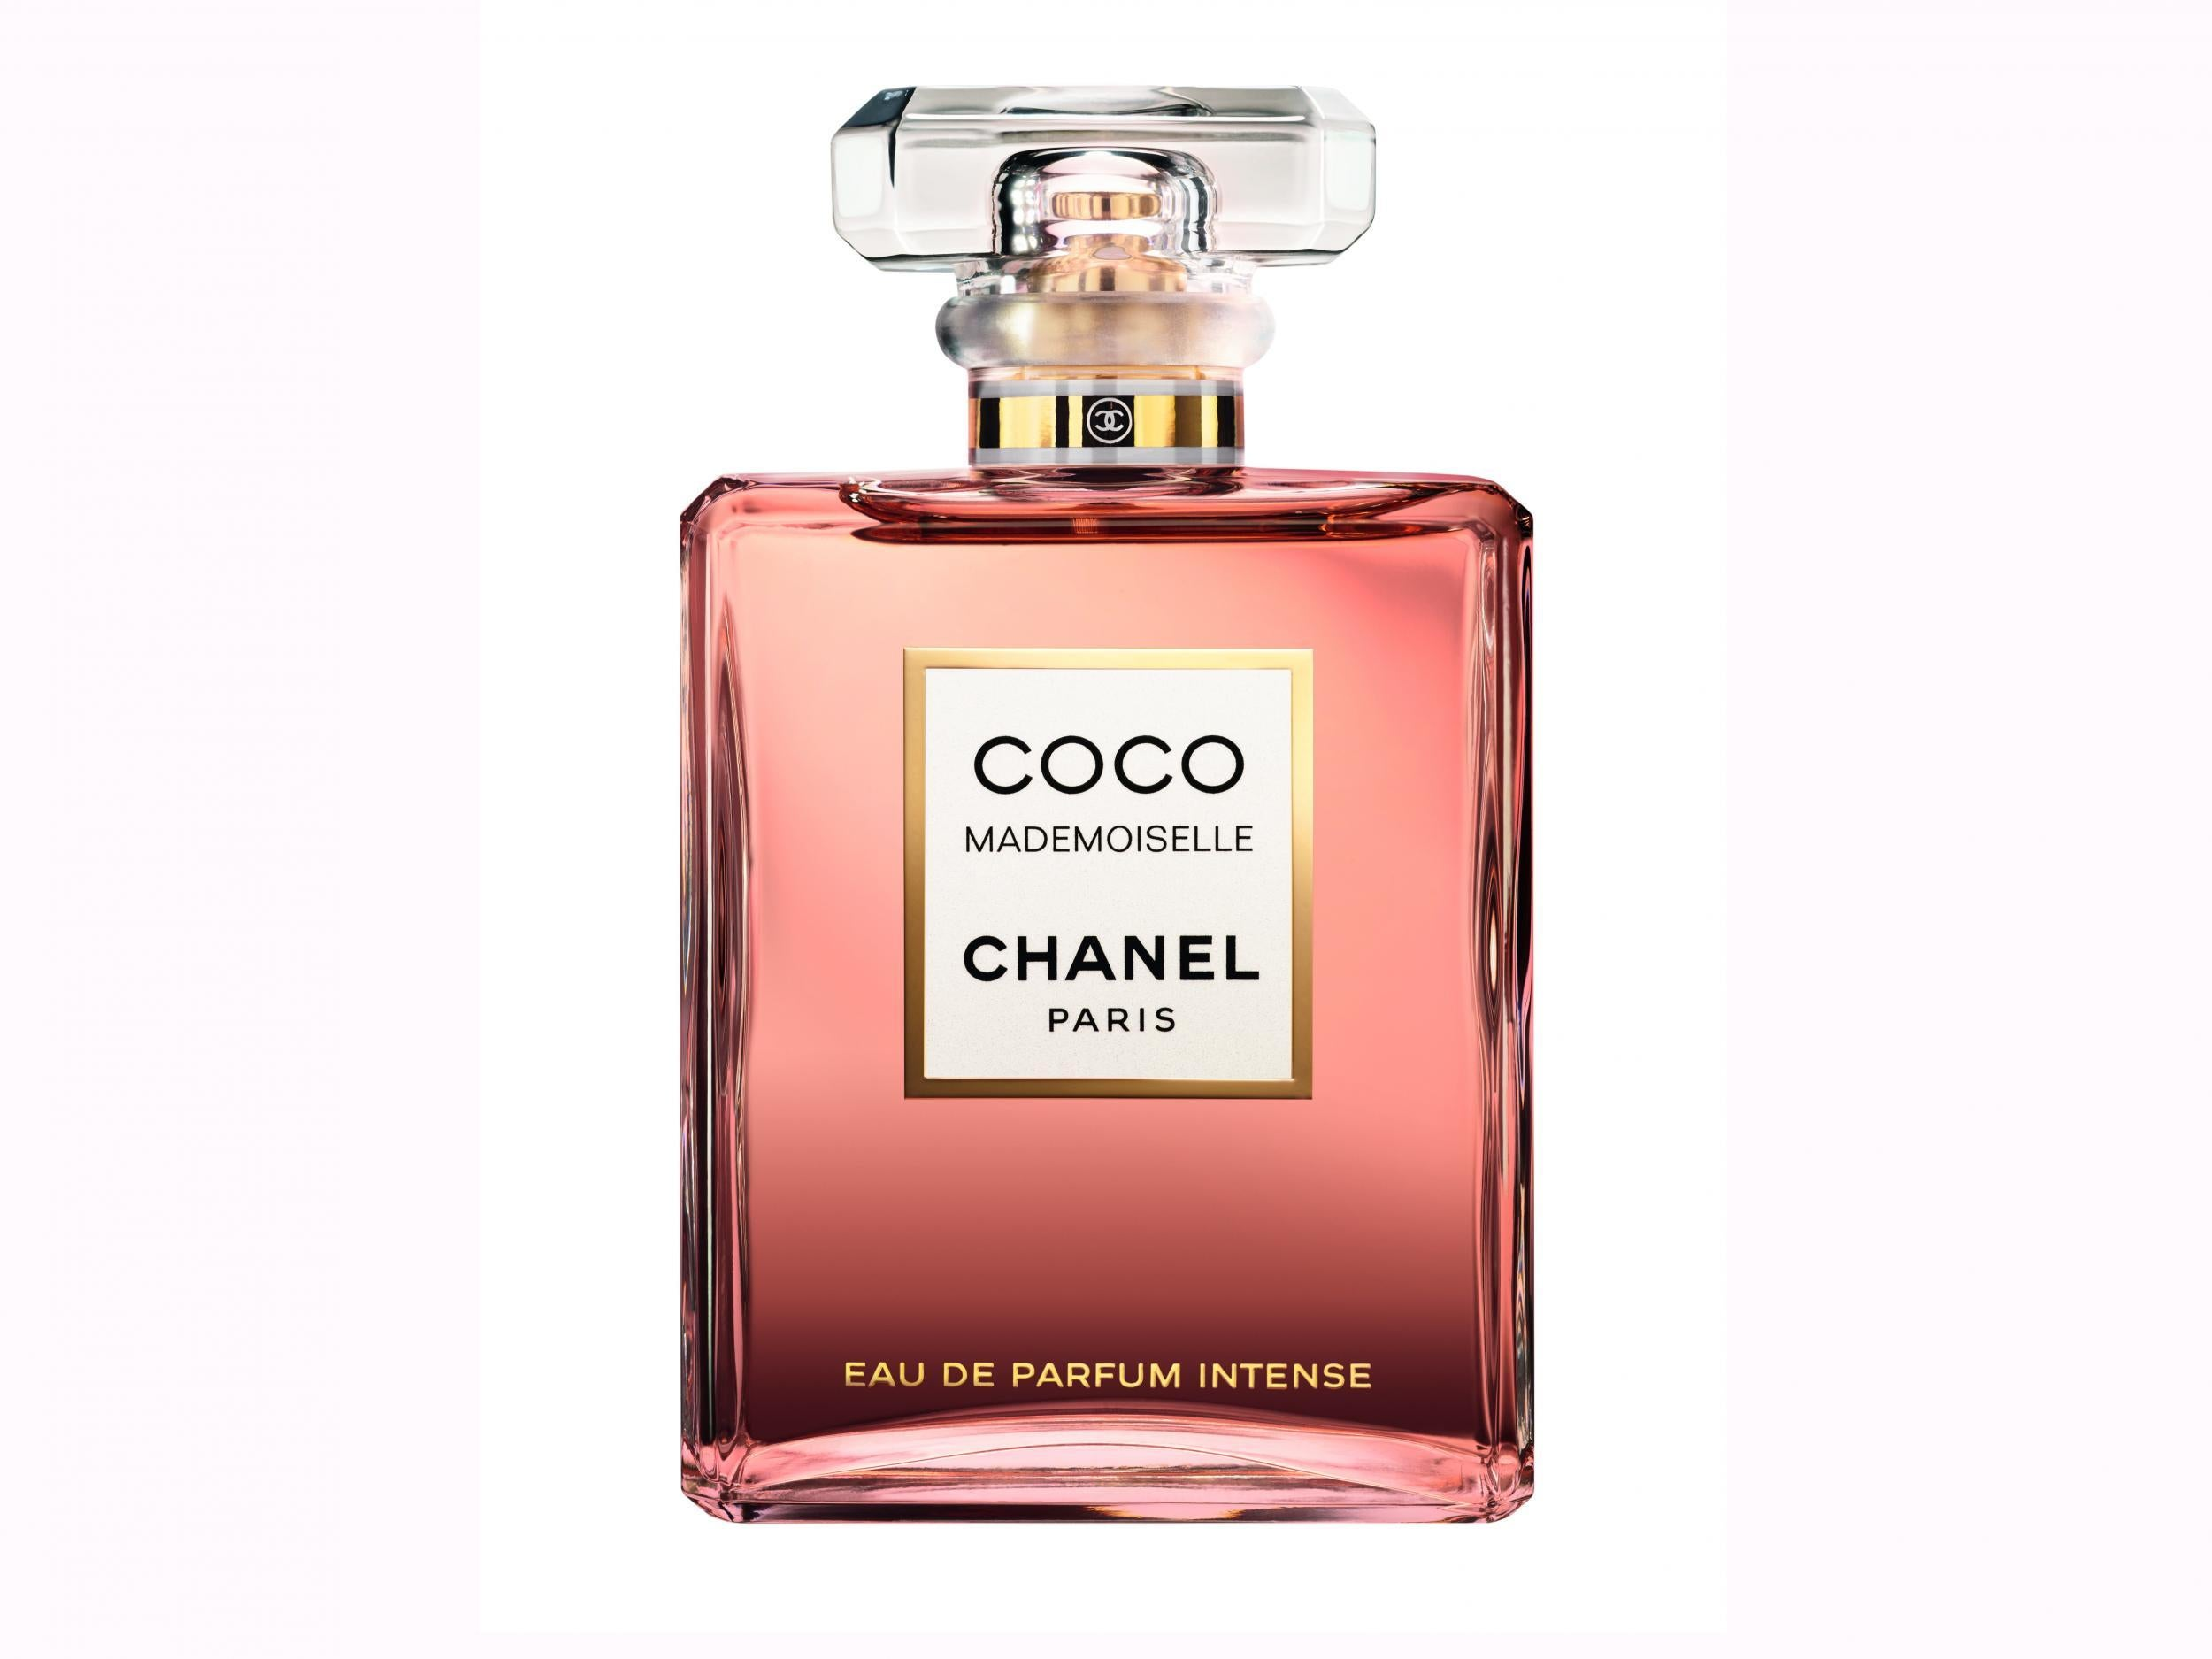 19 best perfumes of 2018 | The Independent